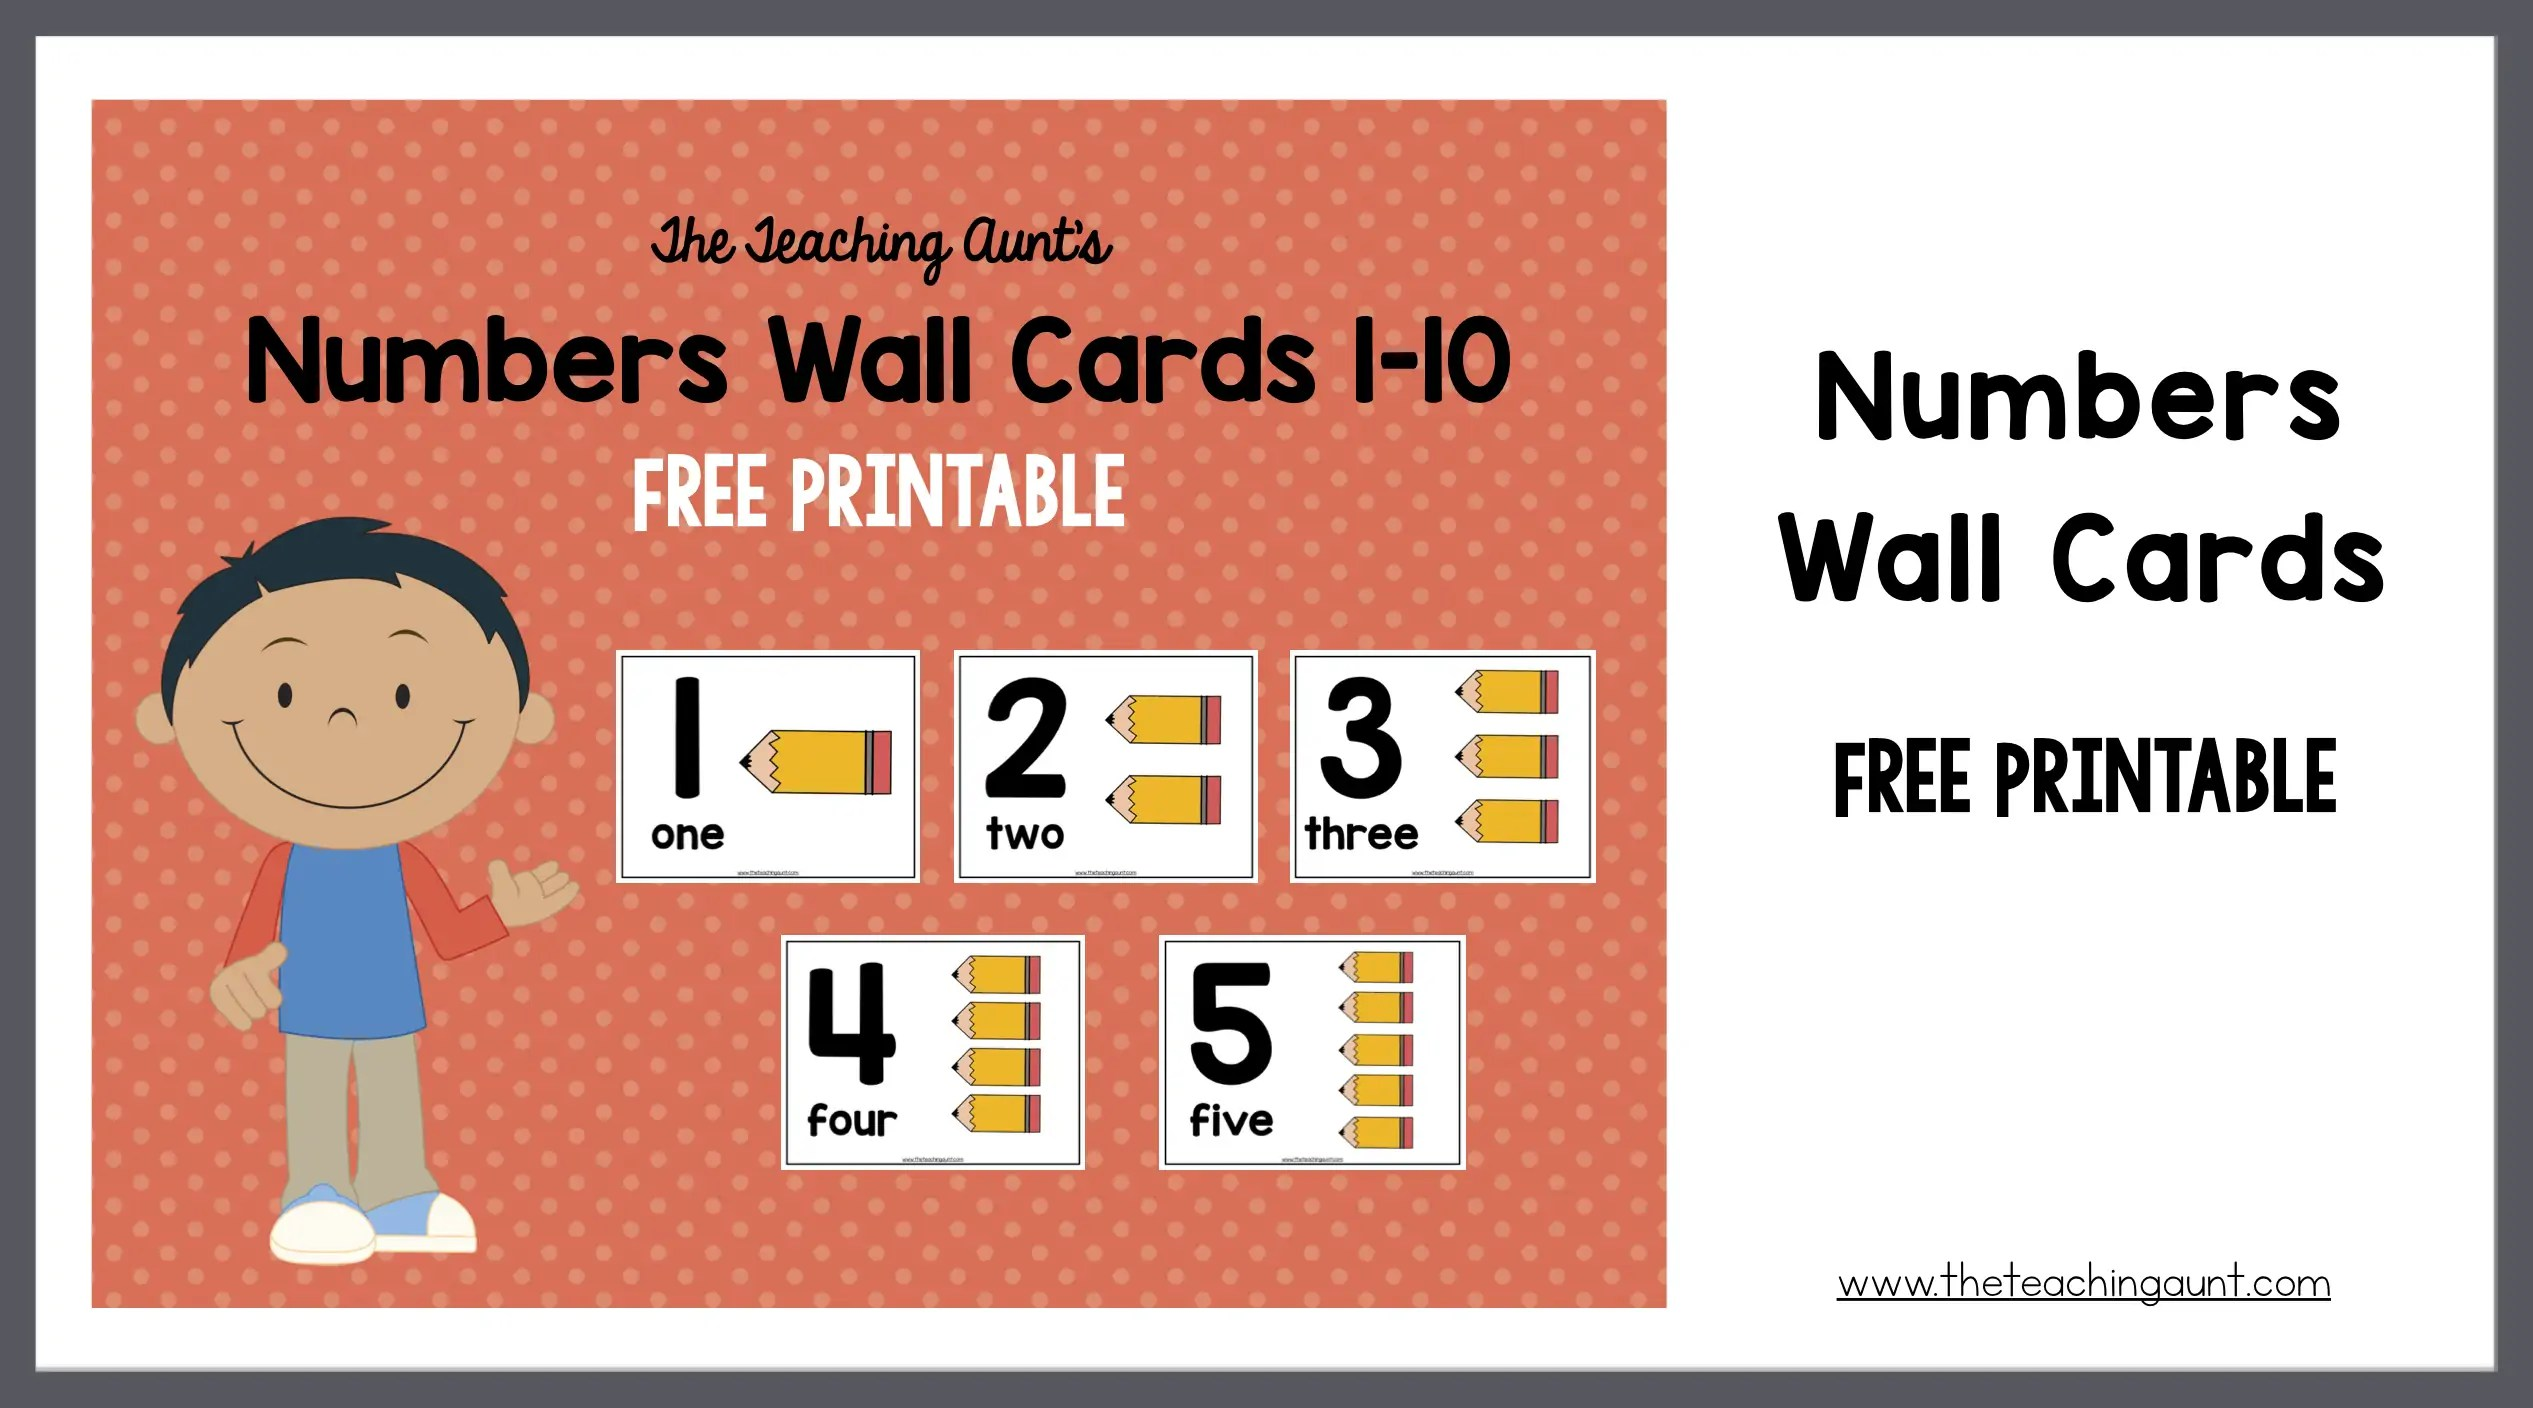 photo relating to Printable Numbers known as Selection Wall Playing cards for Preschoolers - The Training Aunt